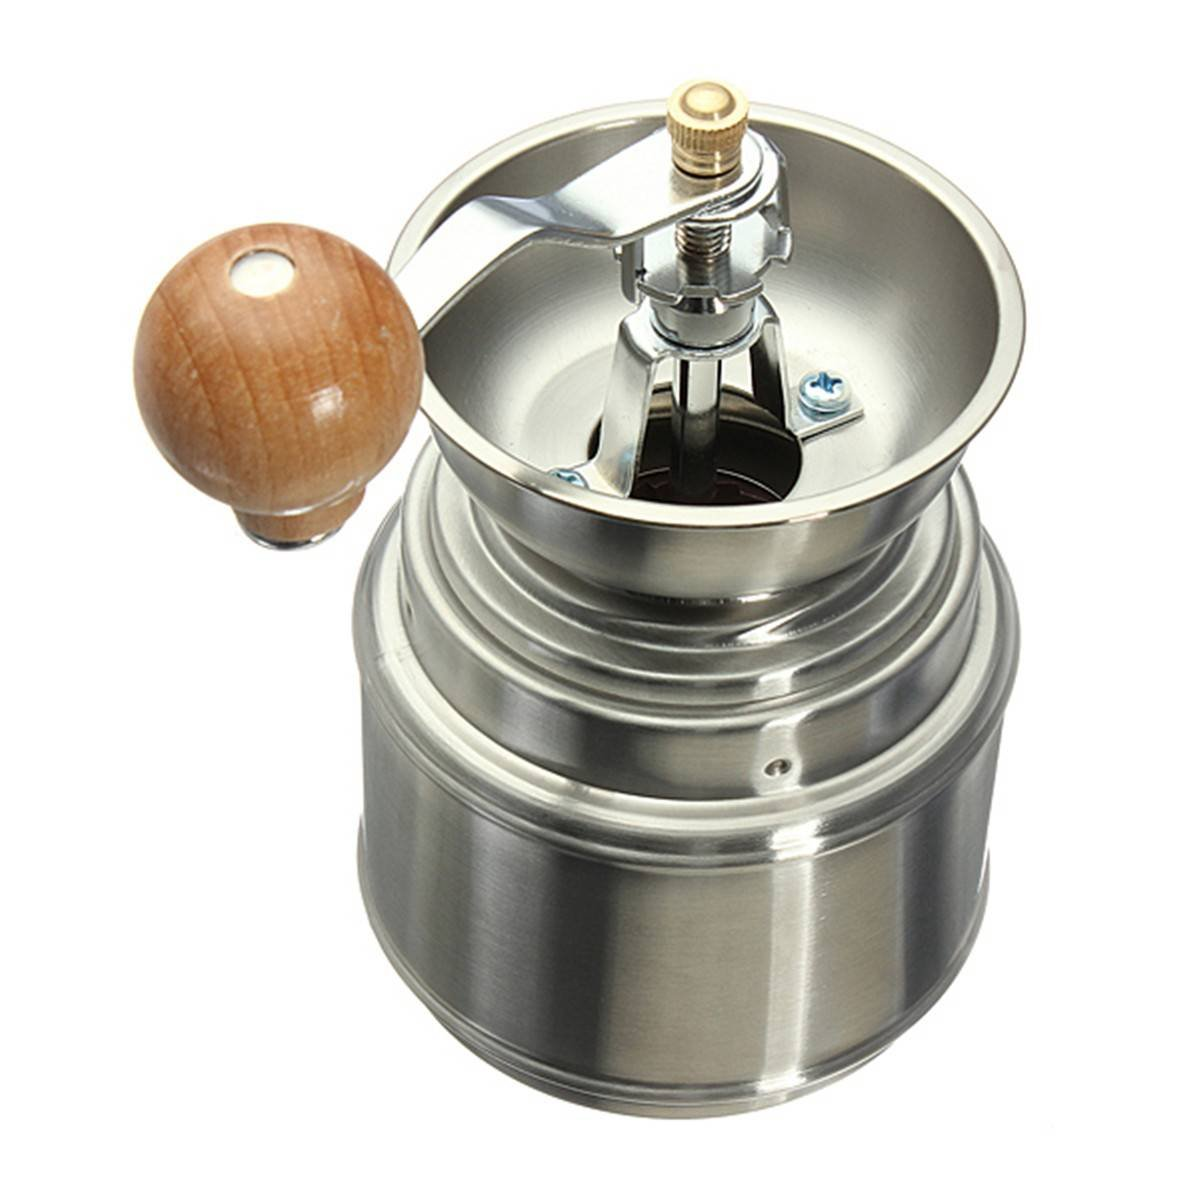 GSFY!Stainless Steel Manual Spice Bean Coffee Grinder Burr Mill Ceramic Core